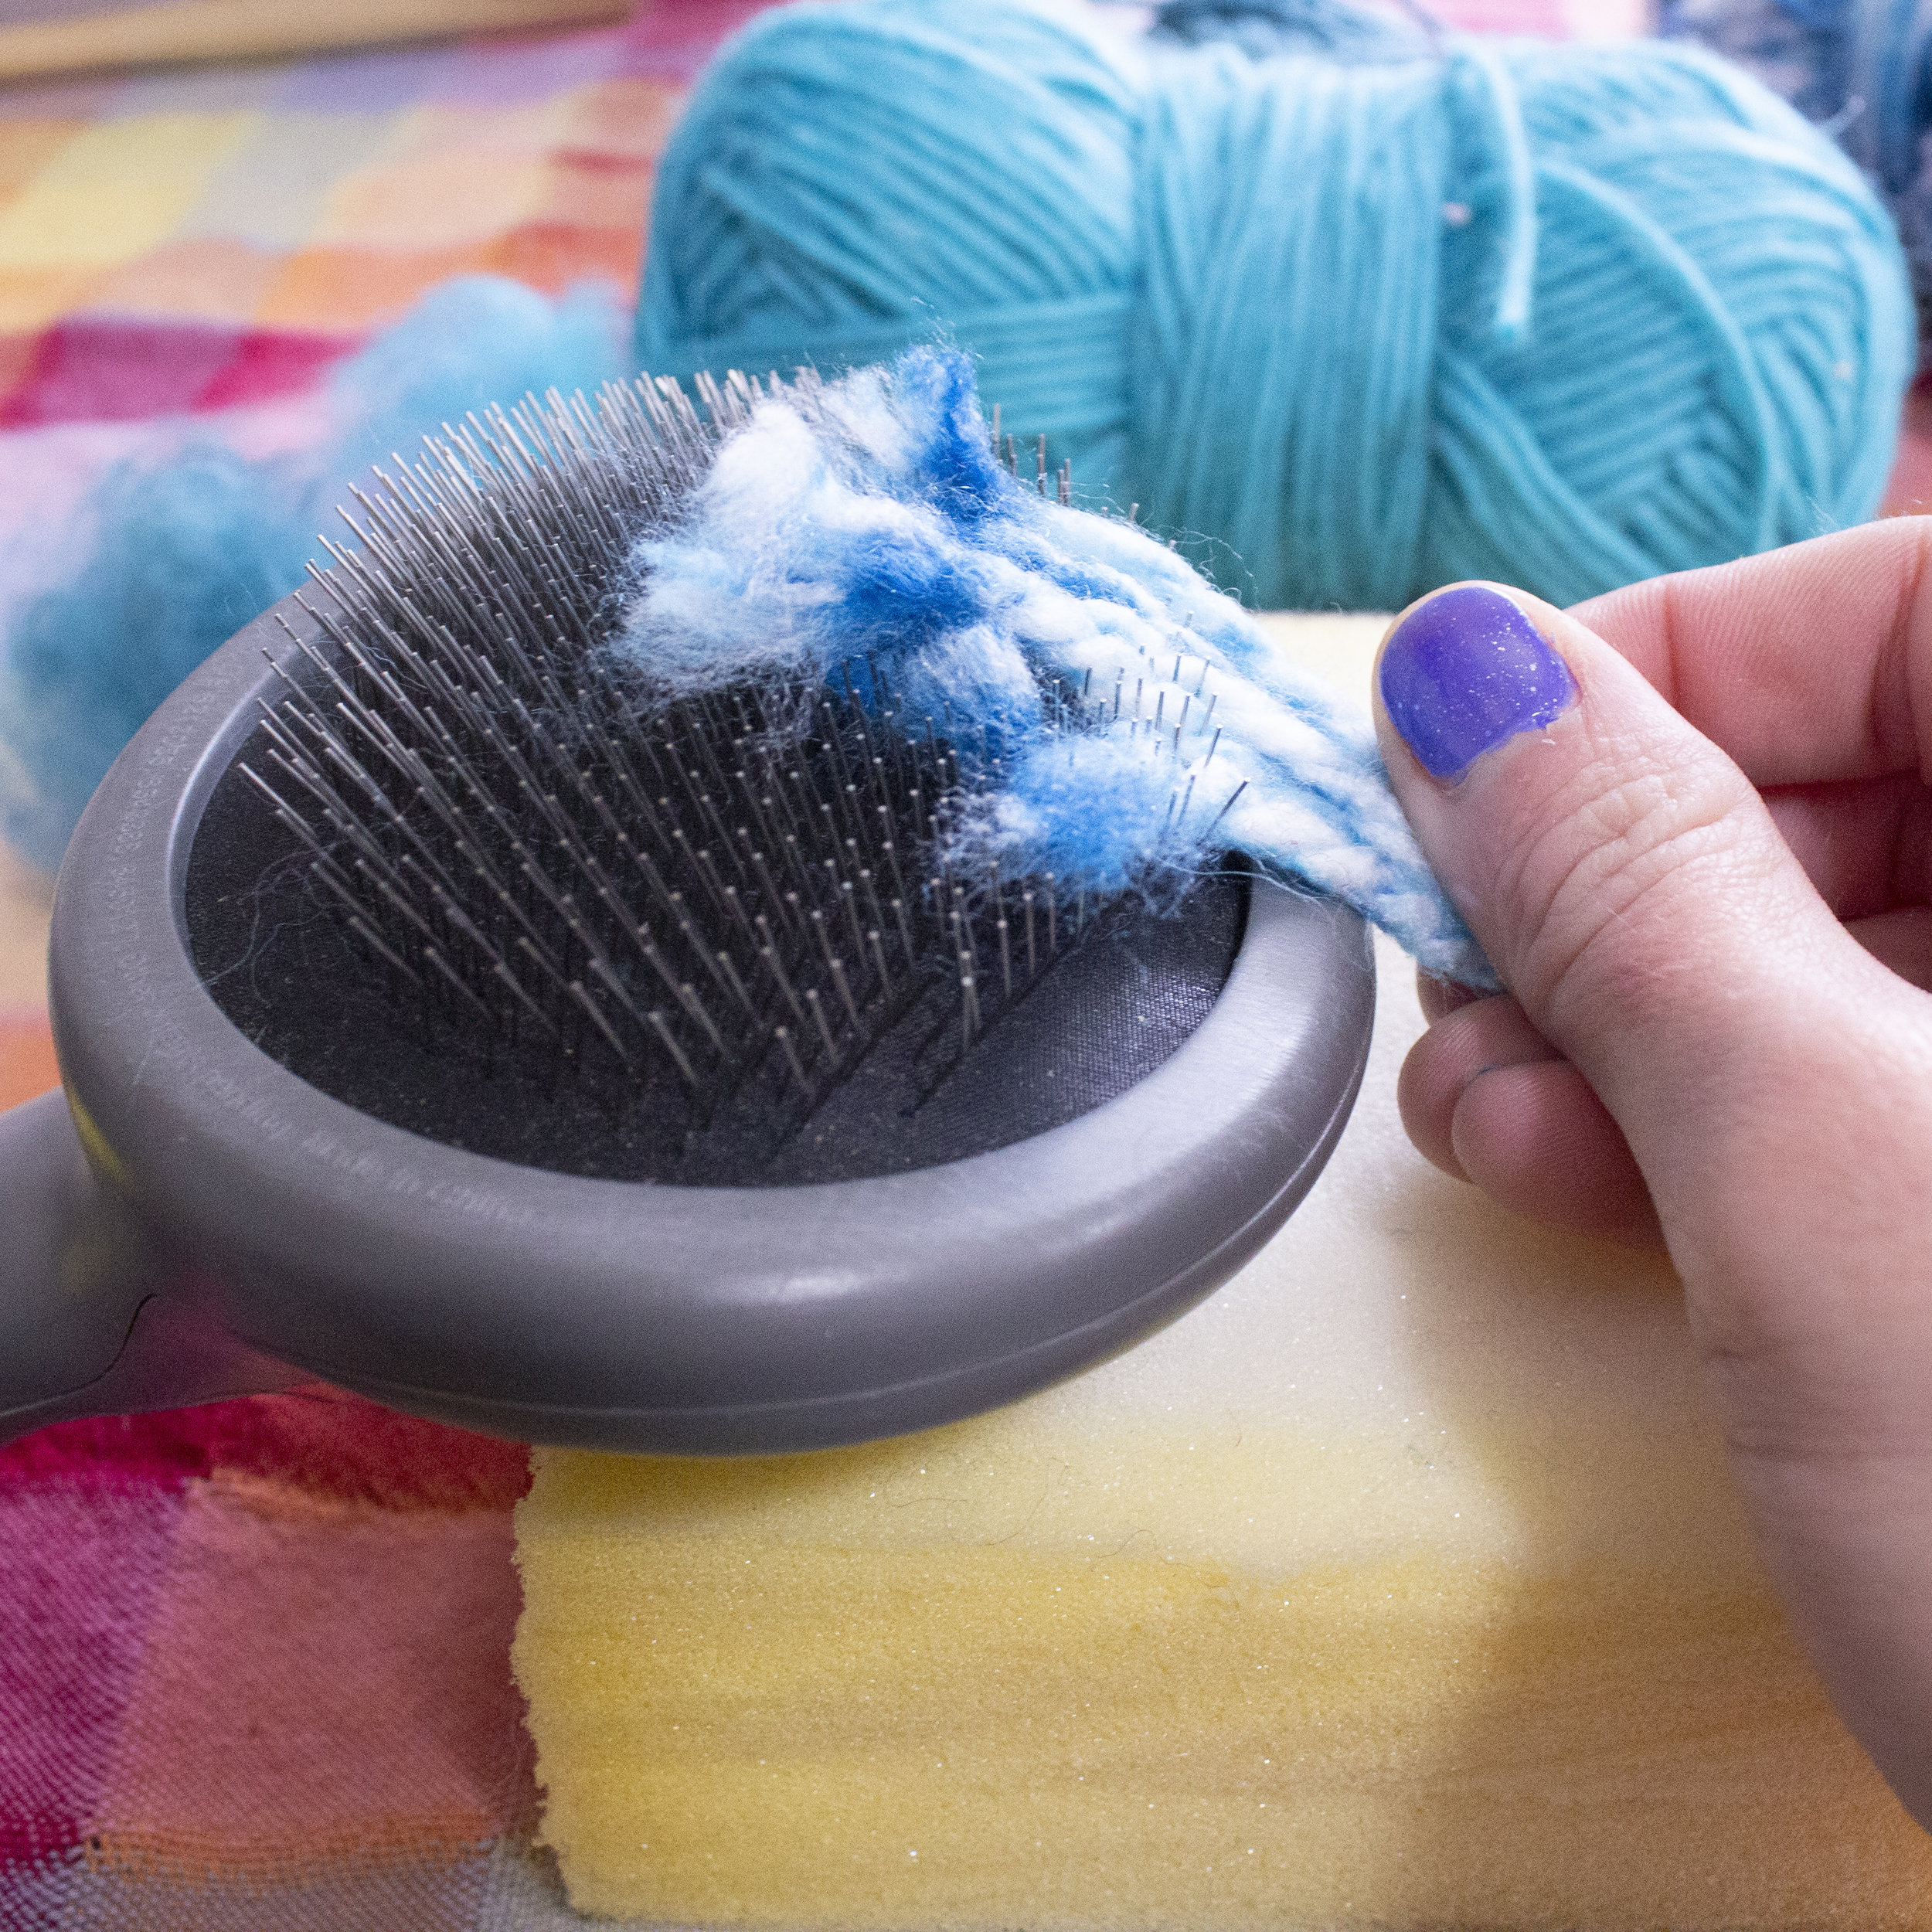 Pulling the fiber by hand against a dog brush.